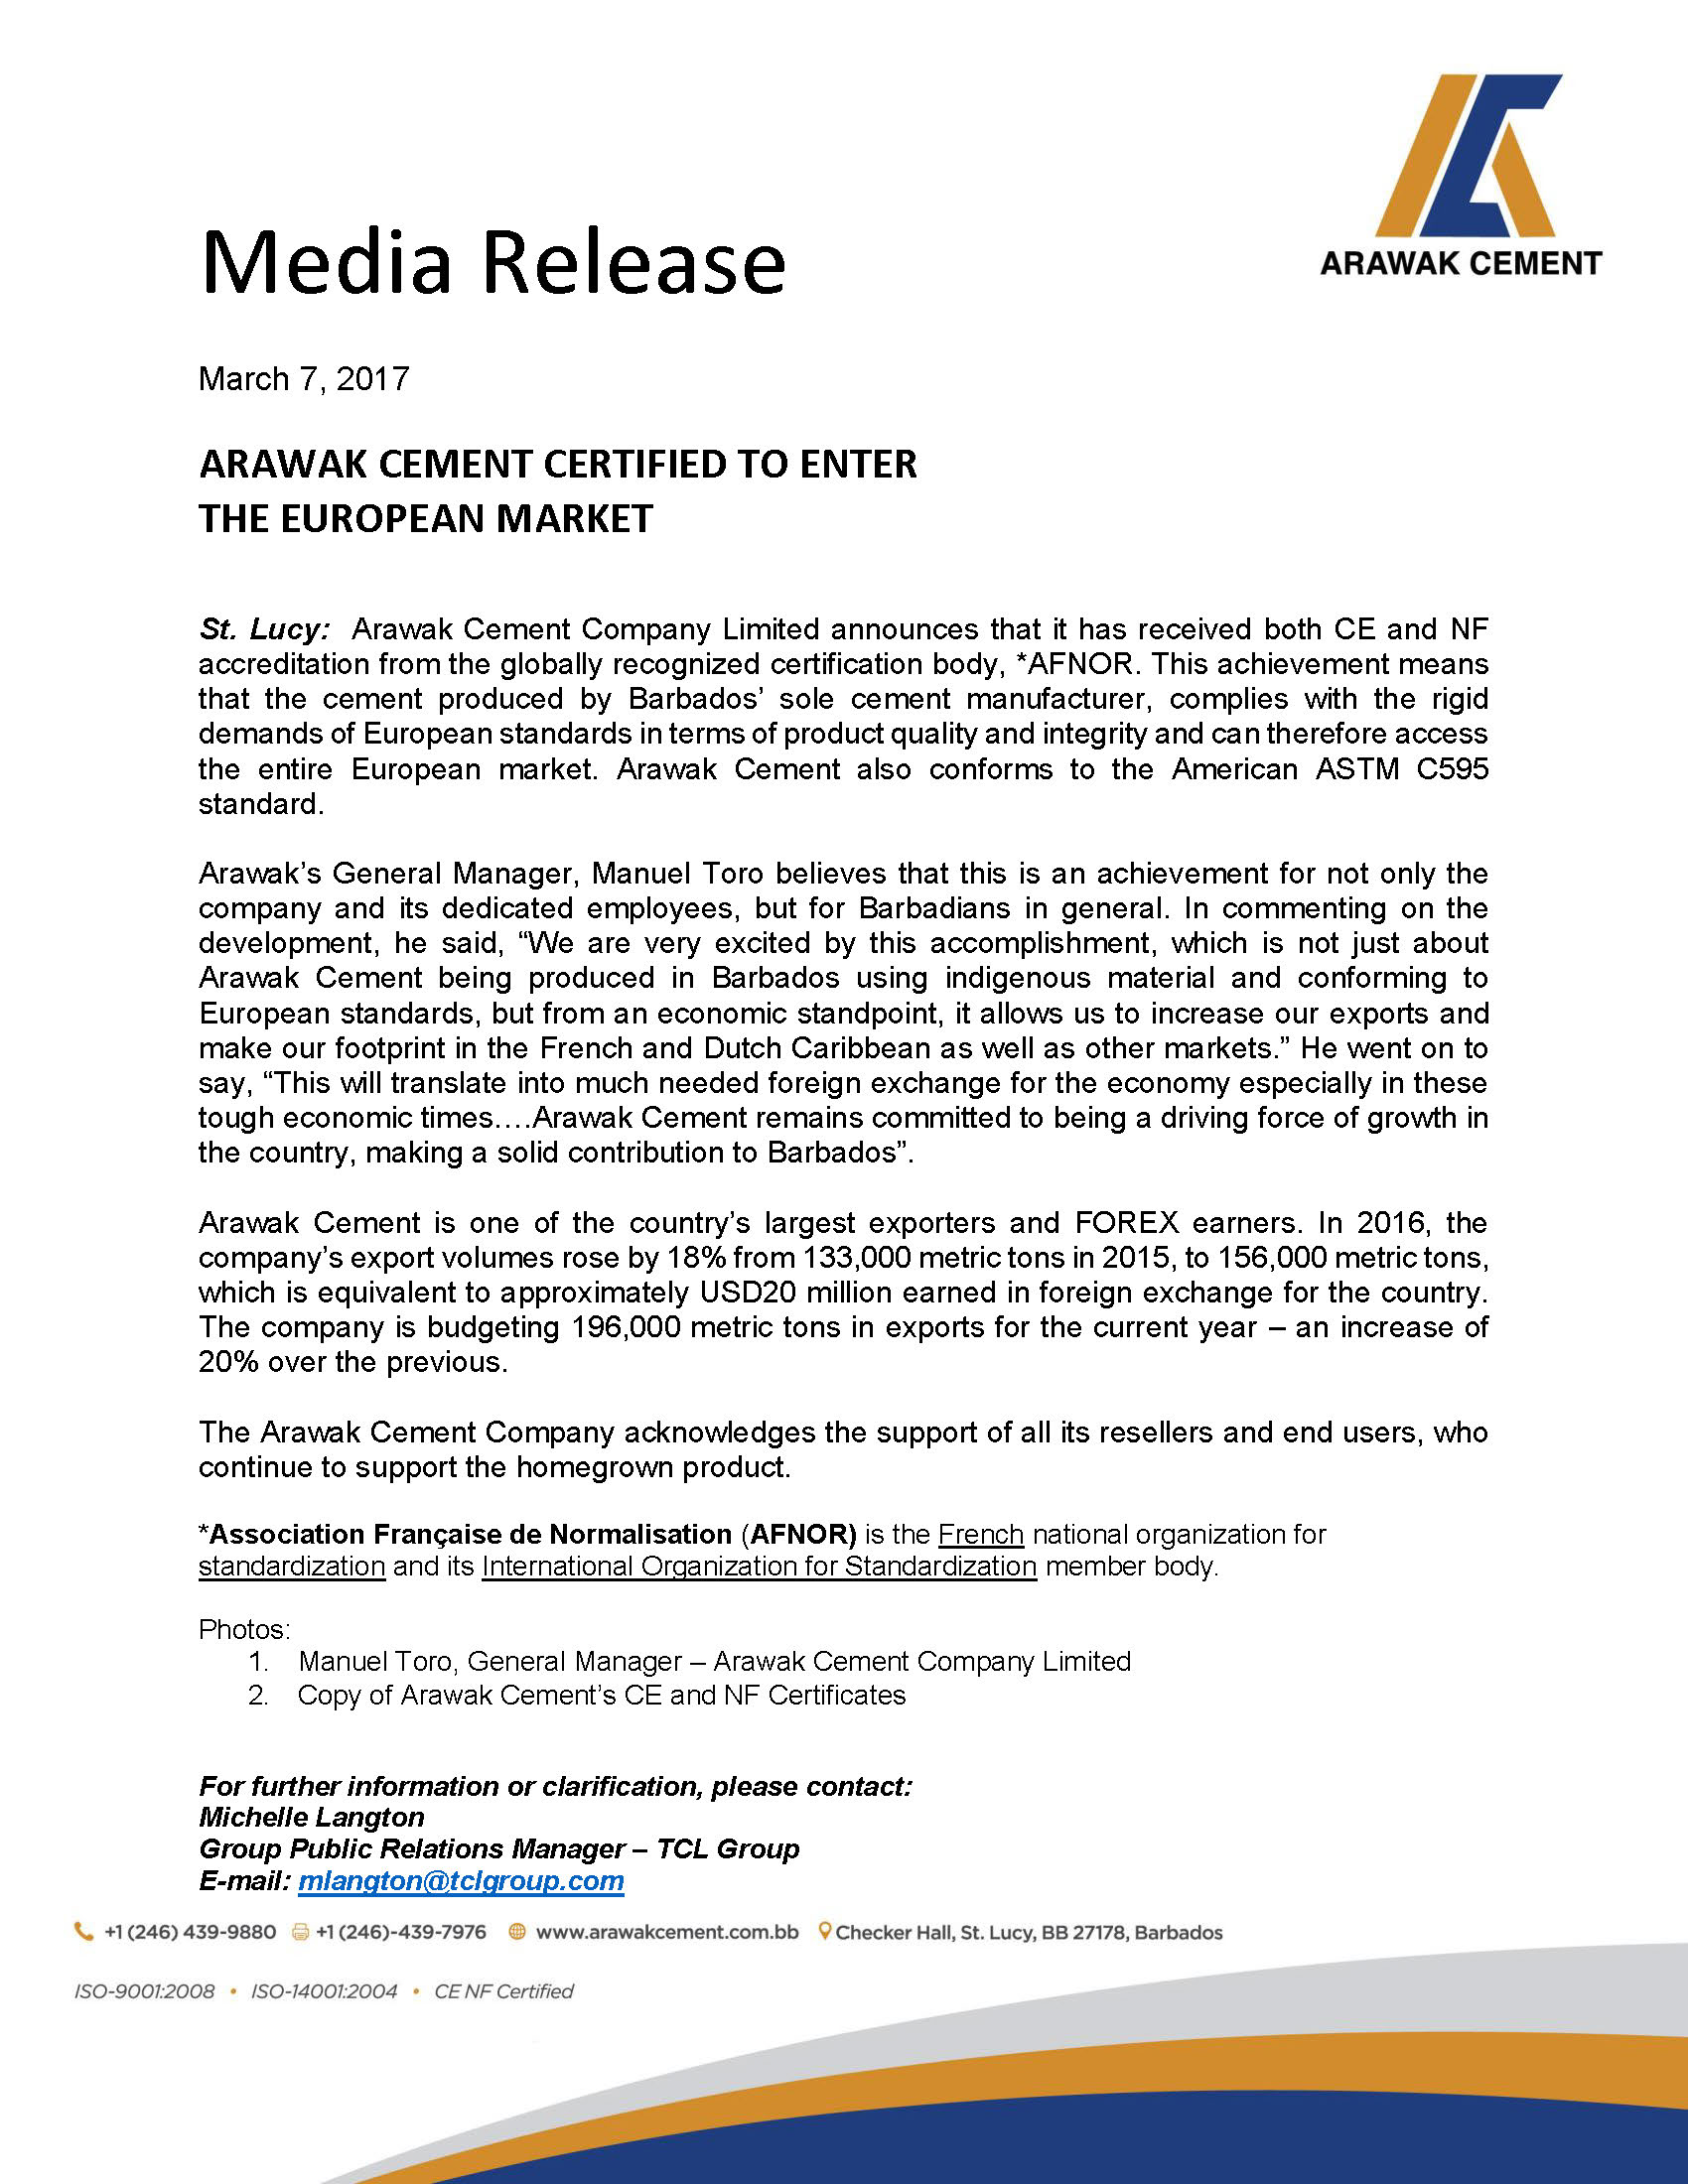 Media Release - Arawak Cement Certified to Enter the European Market